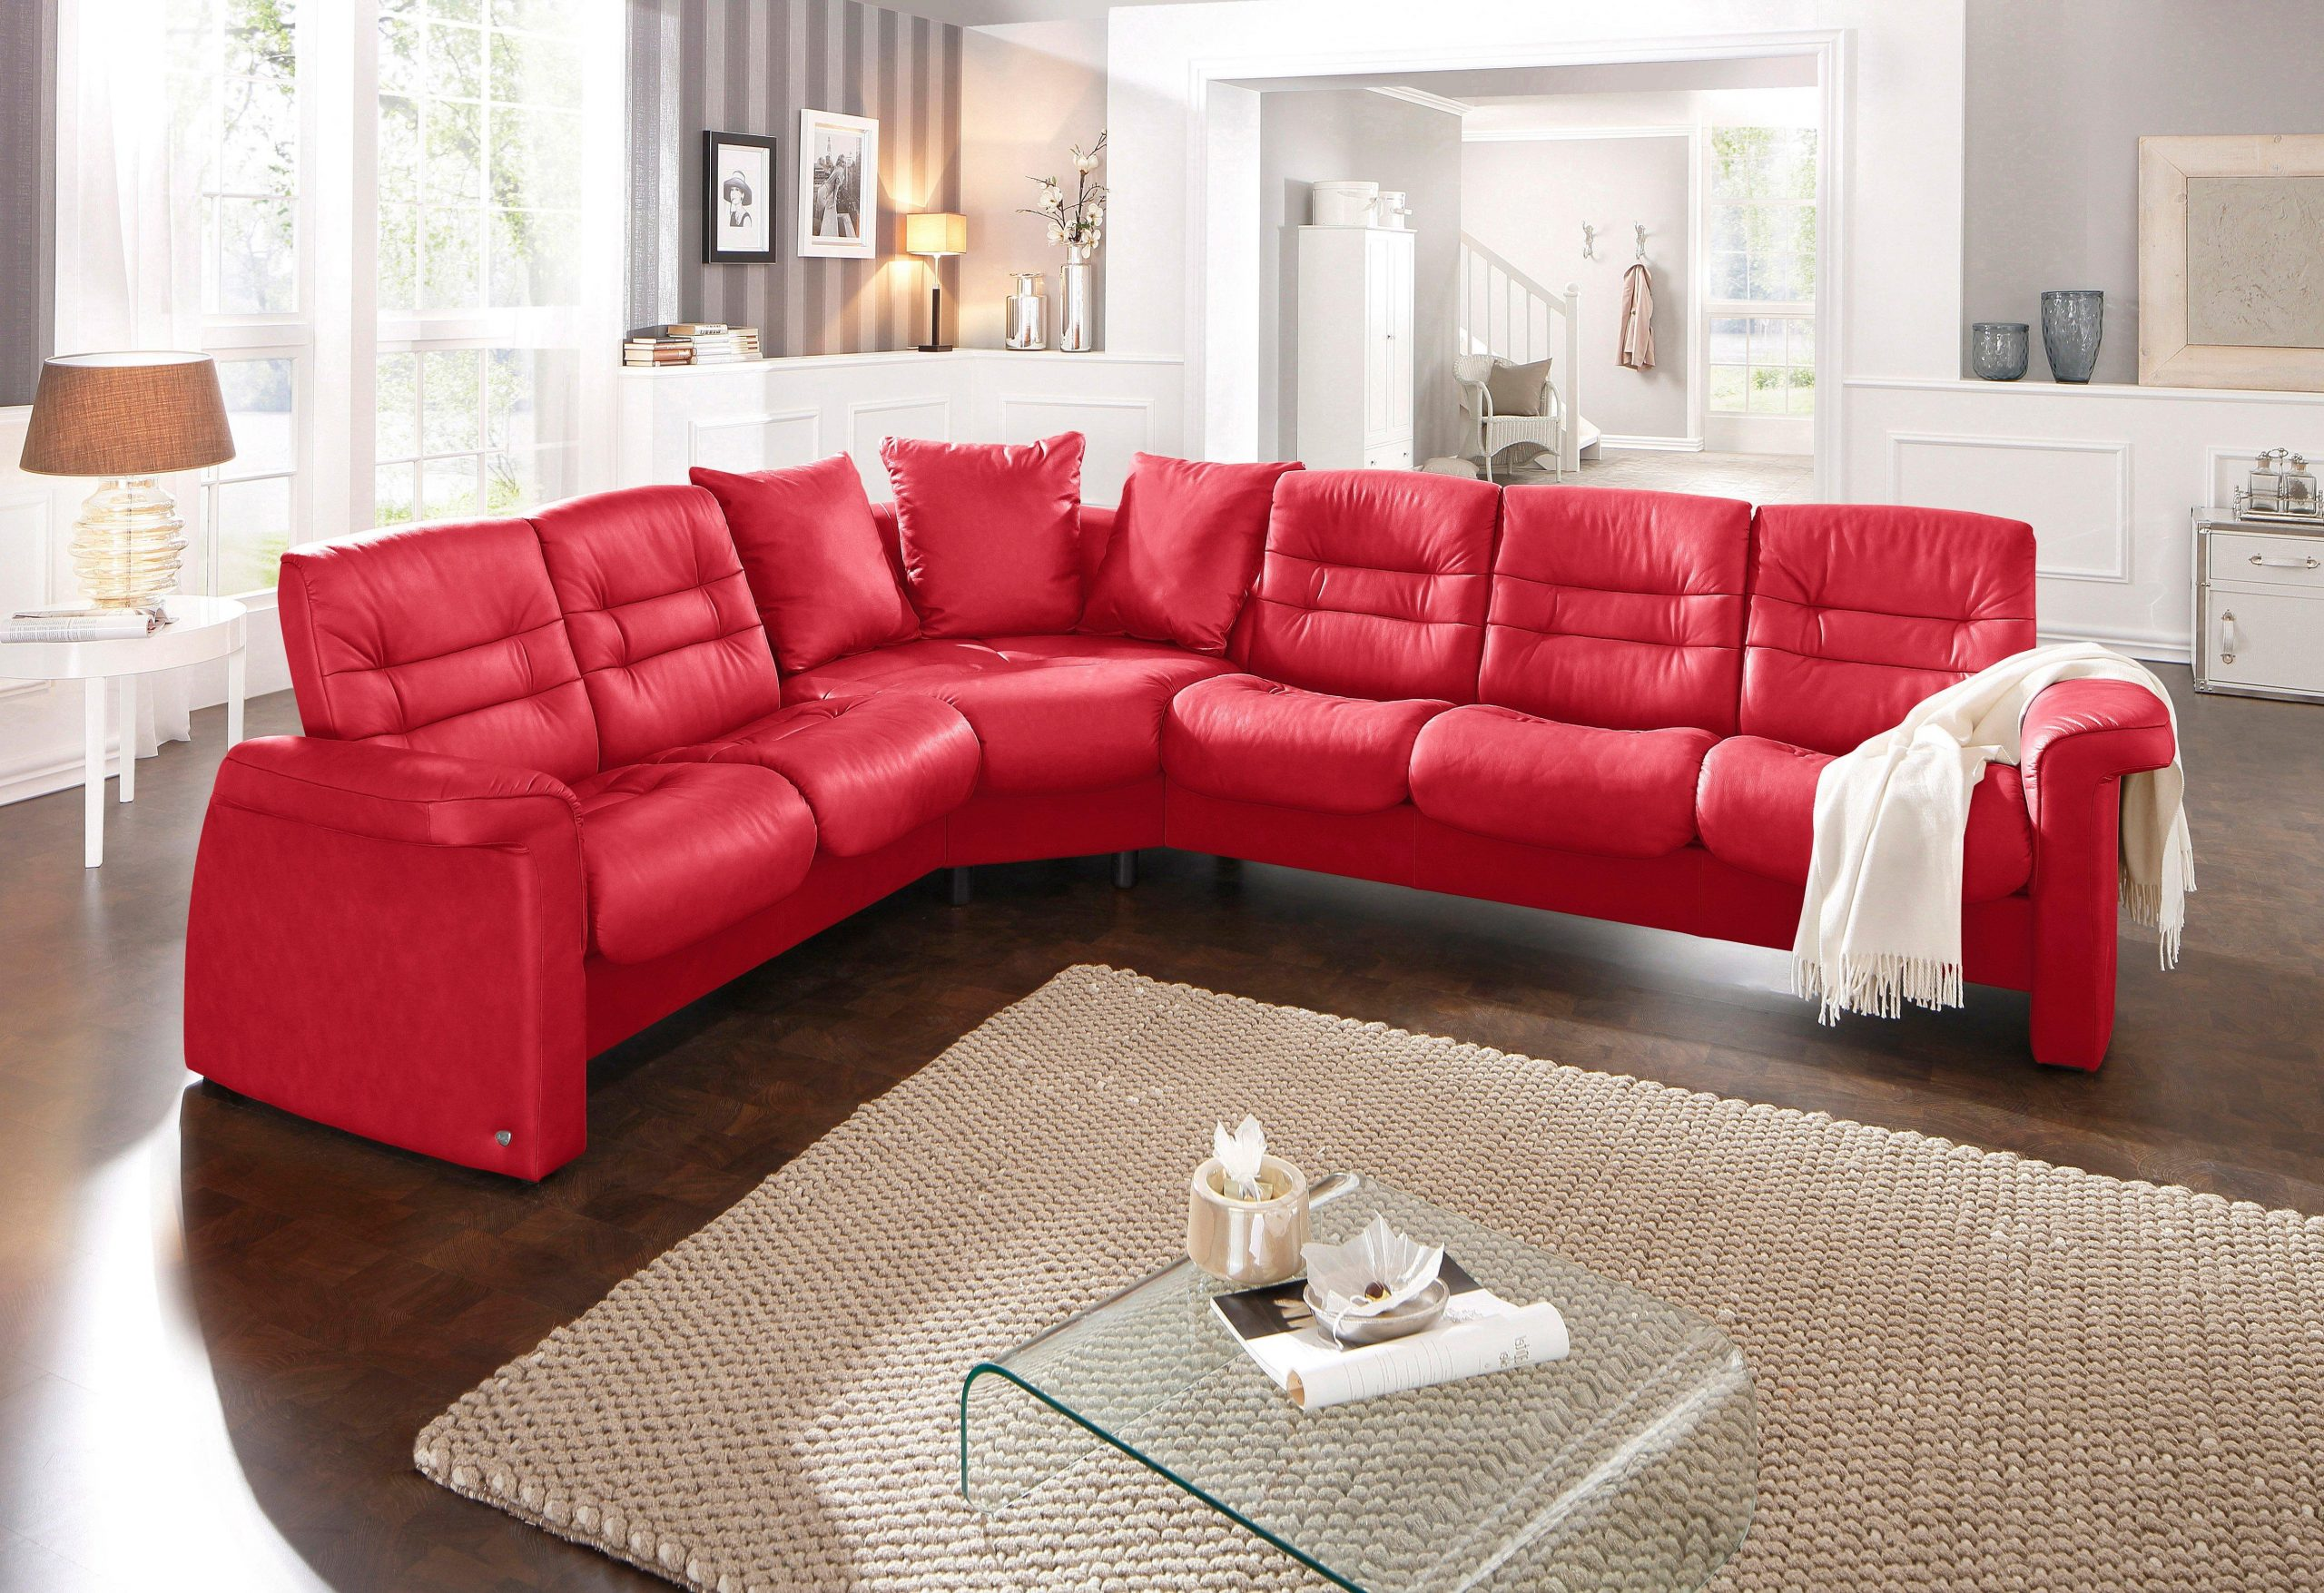 Full Size of Stressless Couch Ebay Wave Sofa Sale Couches Windsor For Furniture Uk Review Arion Leather Colors Canada Auf Raten 2er Kissen Luxus Garten Ecksofa Big Mit Sofa Stressless Sofa